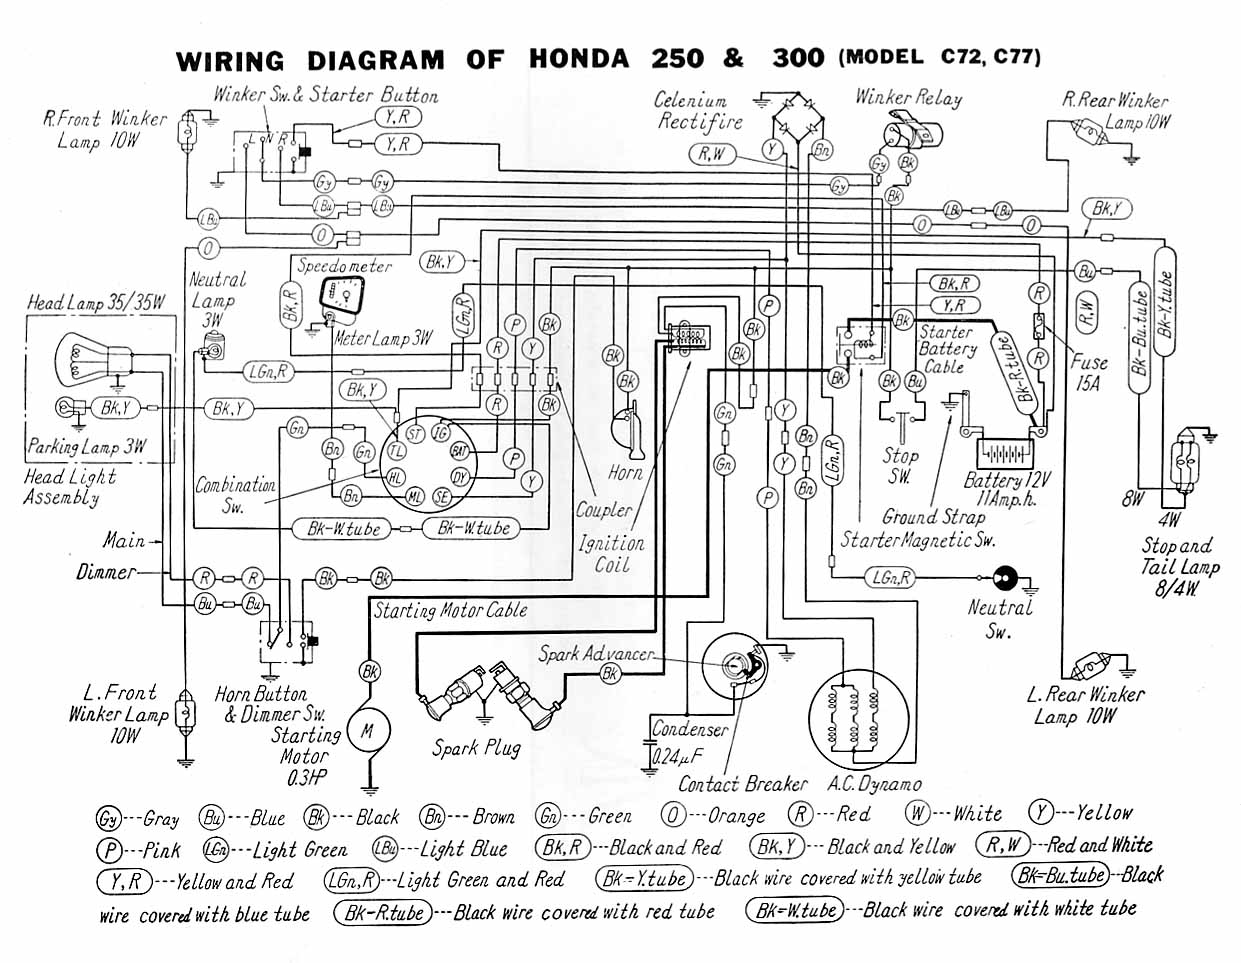 honda motorcycle wiring diagrams download wiring diagramhonda cl72 wiring wiring diagramhonda cl72 wiring diagram wiring diagram